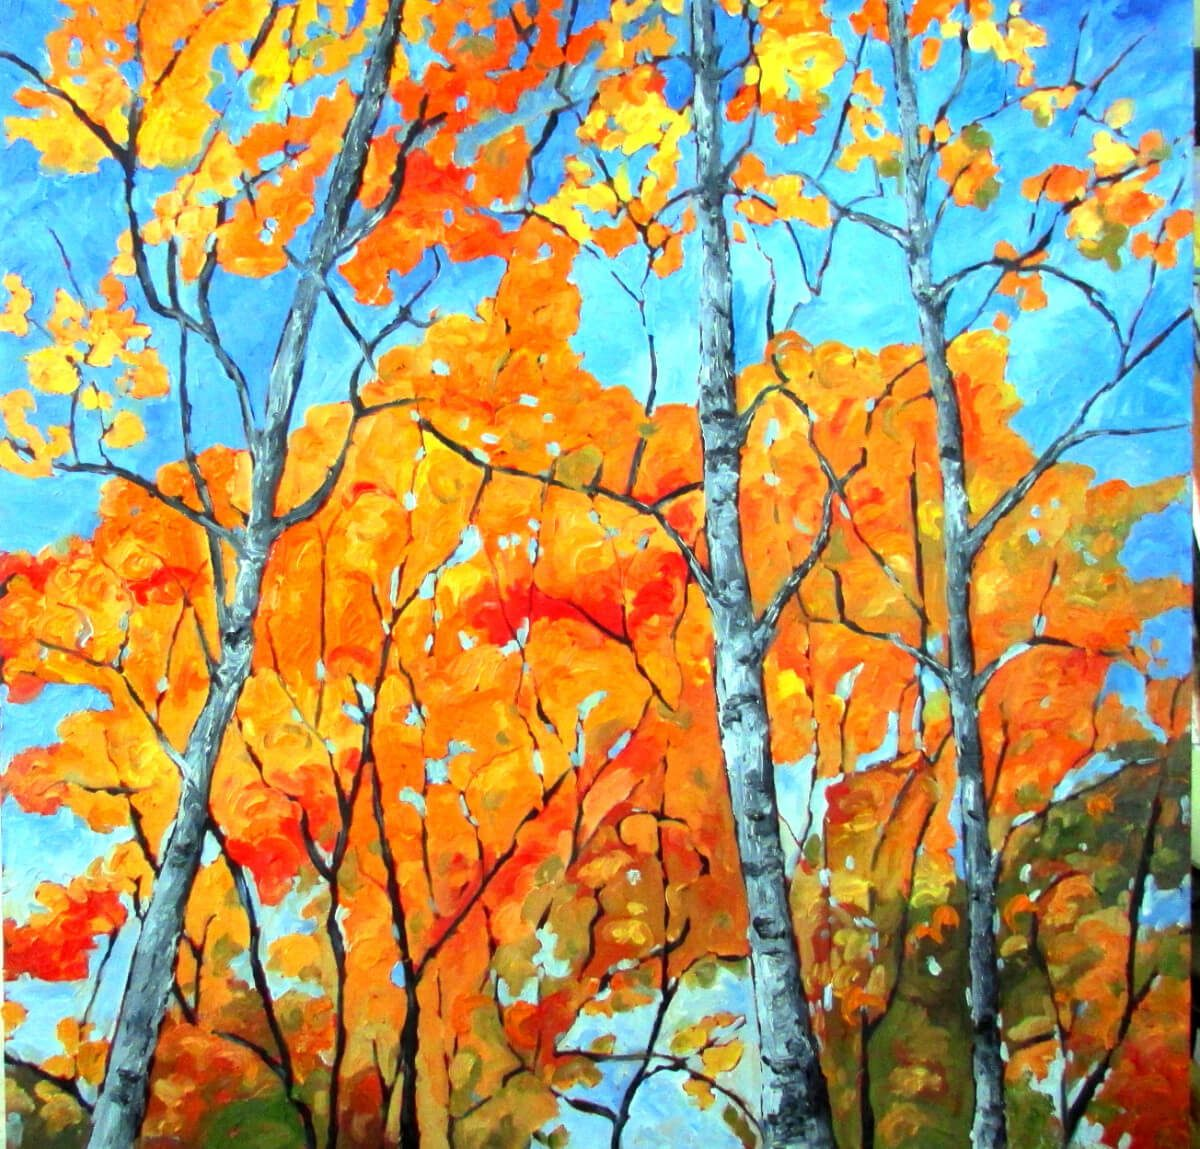 Autumn Birches | Marriage gift idea | Wedding Registry for Art